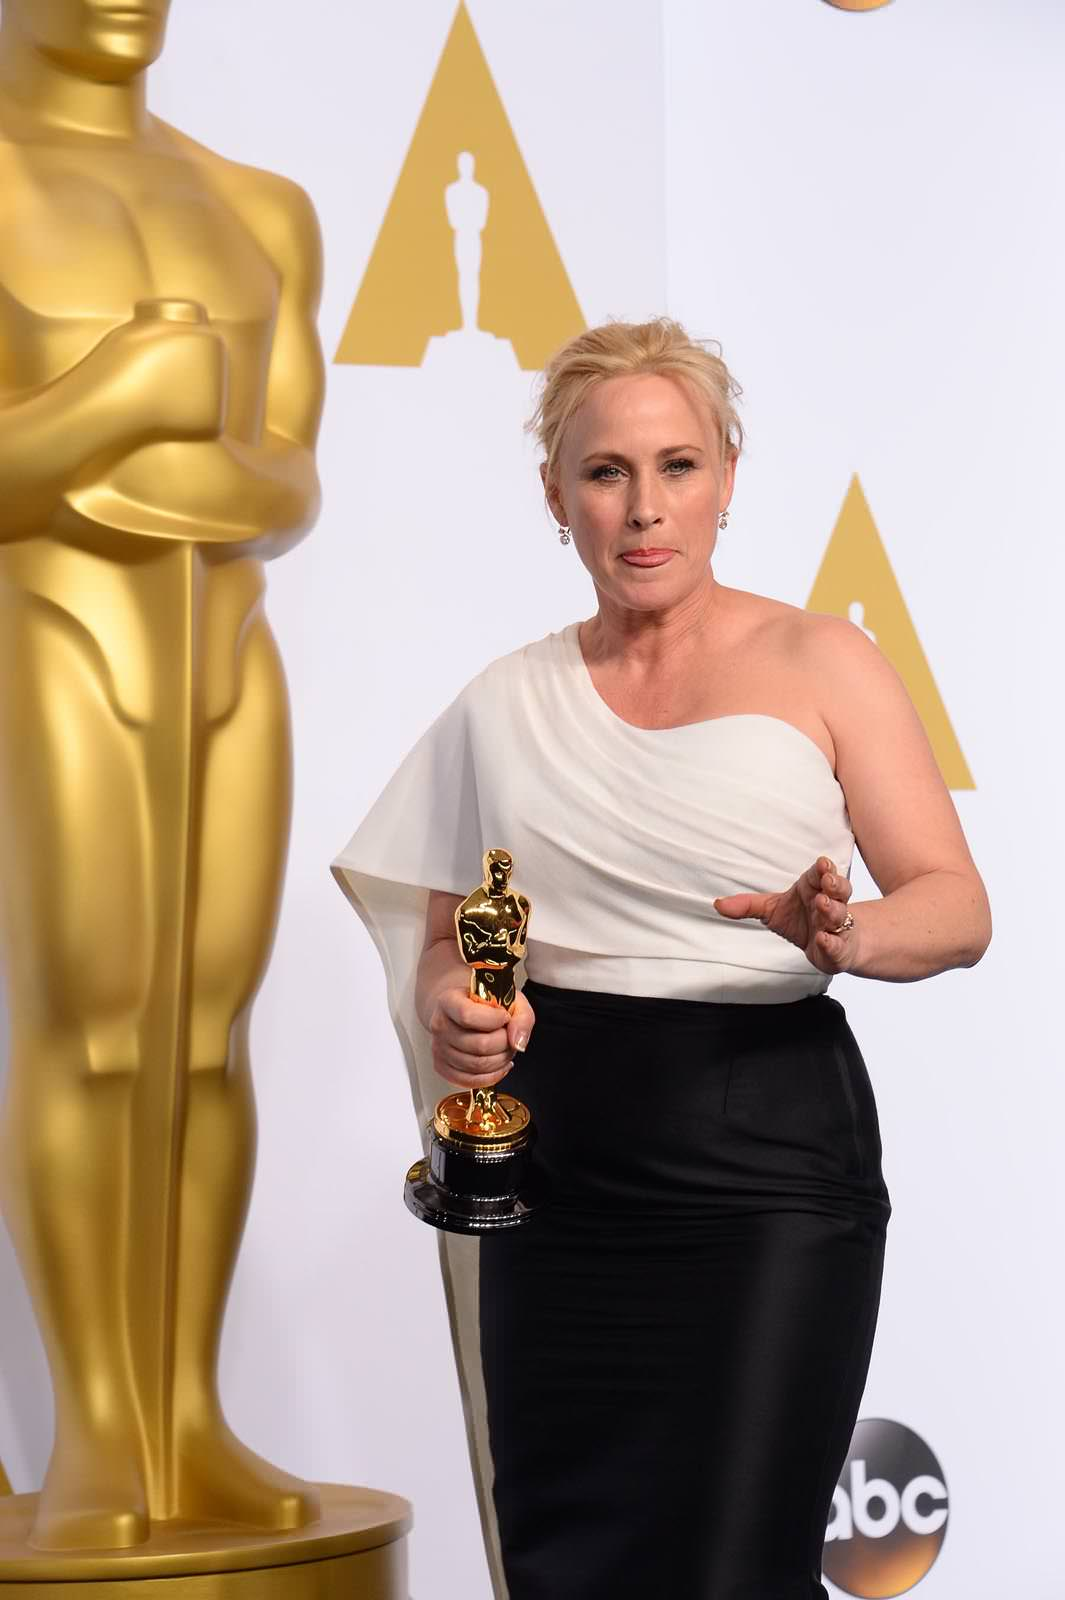 Patricia Arquette Photo Gallery